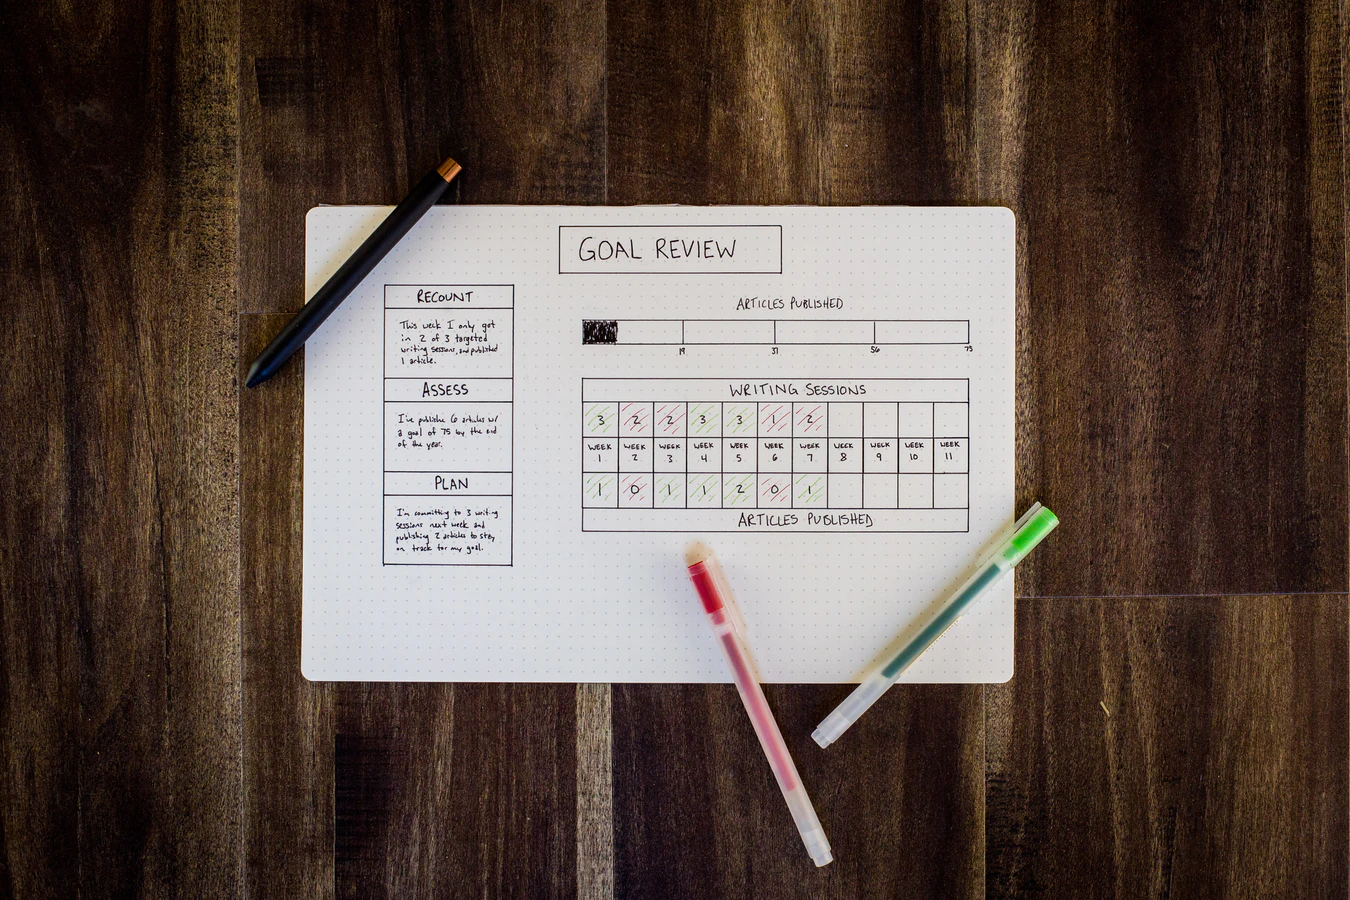 SMART Goals for Technical Writers